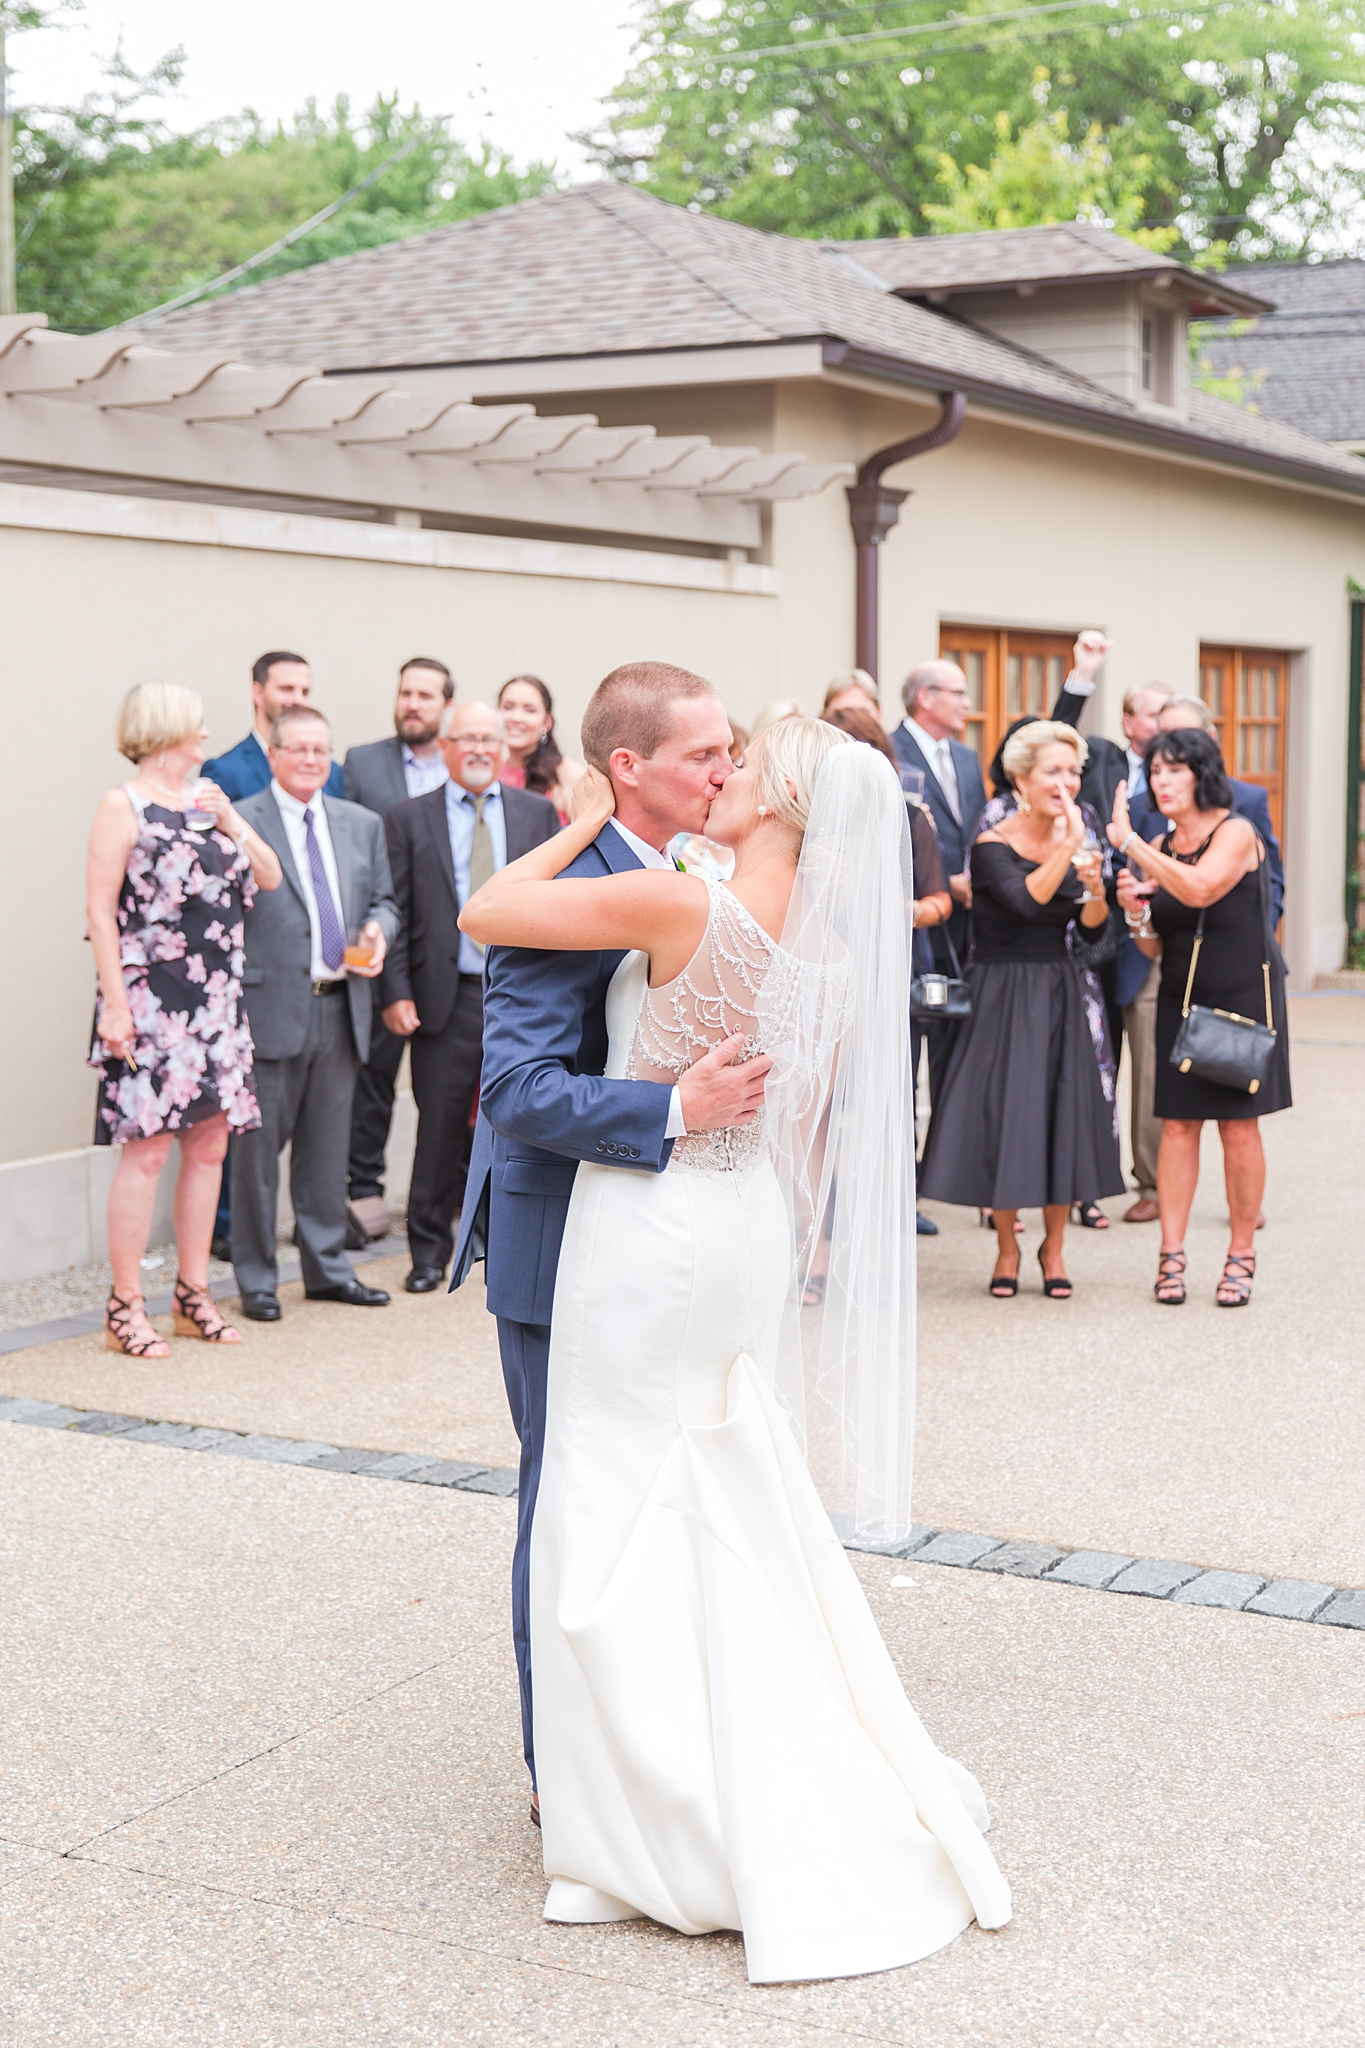 chapman-house-casually-chic-wedding-photography-in-rochester-michigan-by-courtney-carolyn-photography_0055.jpg